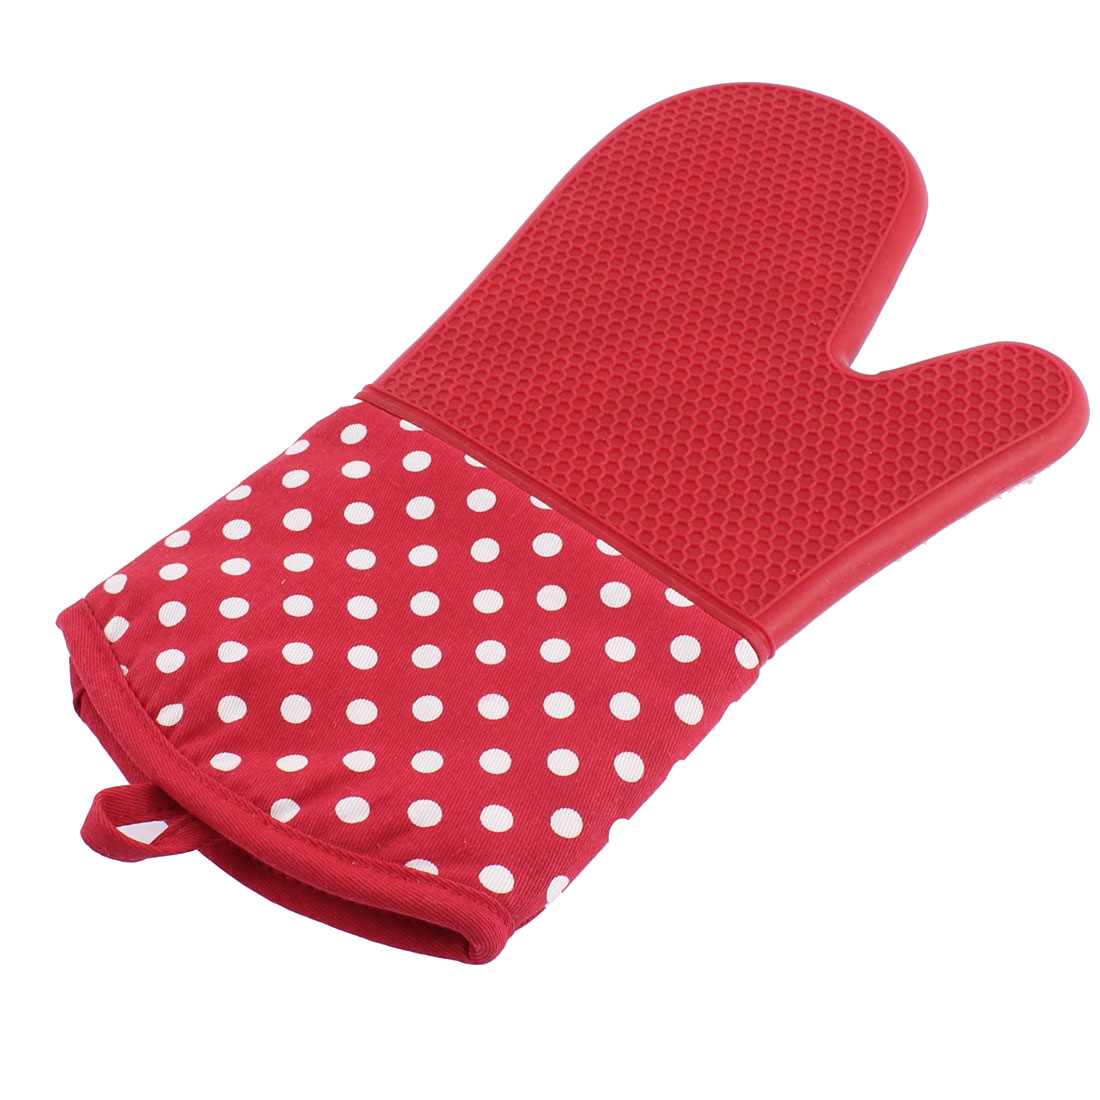 Home Kitchen Dots Pattern Non Slip Heat Resistance Mitt Glove Red